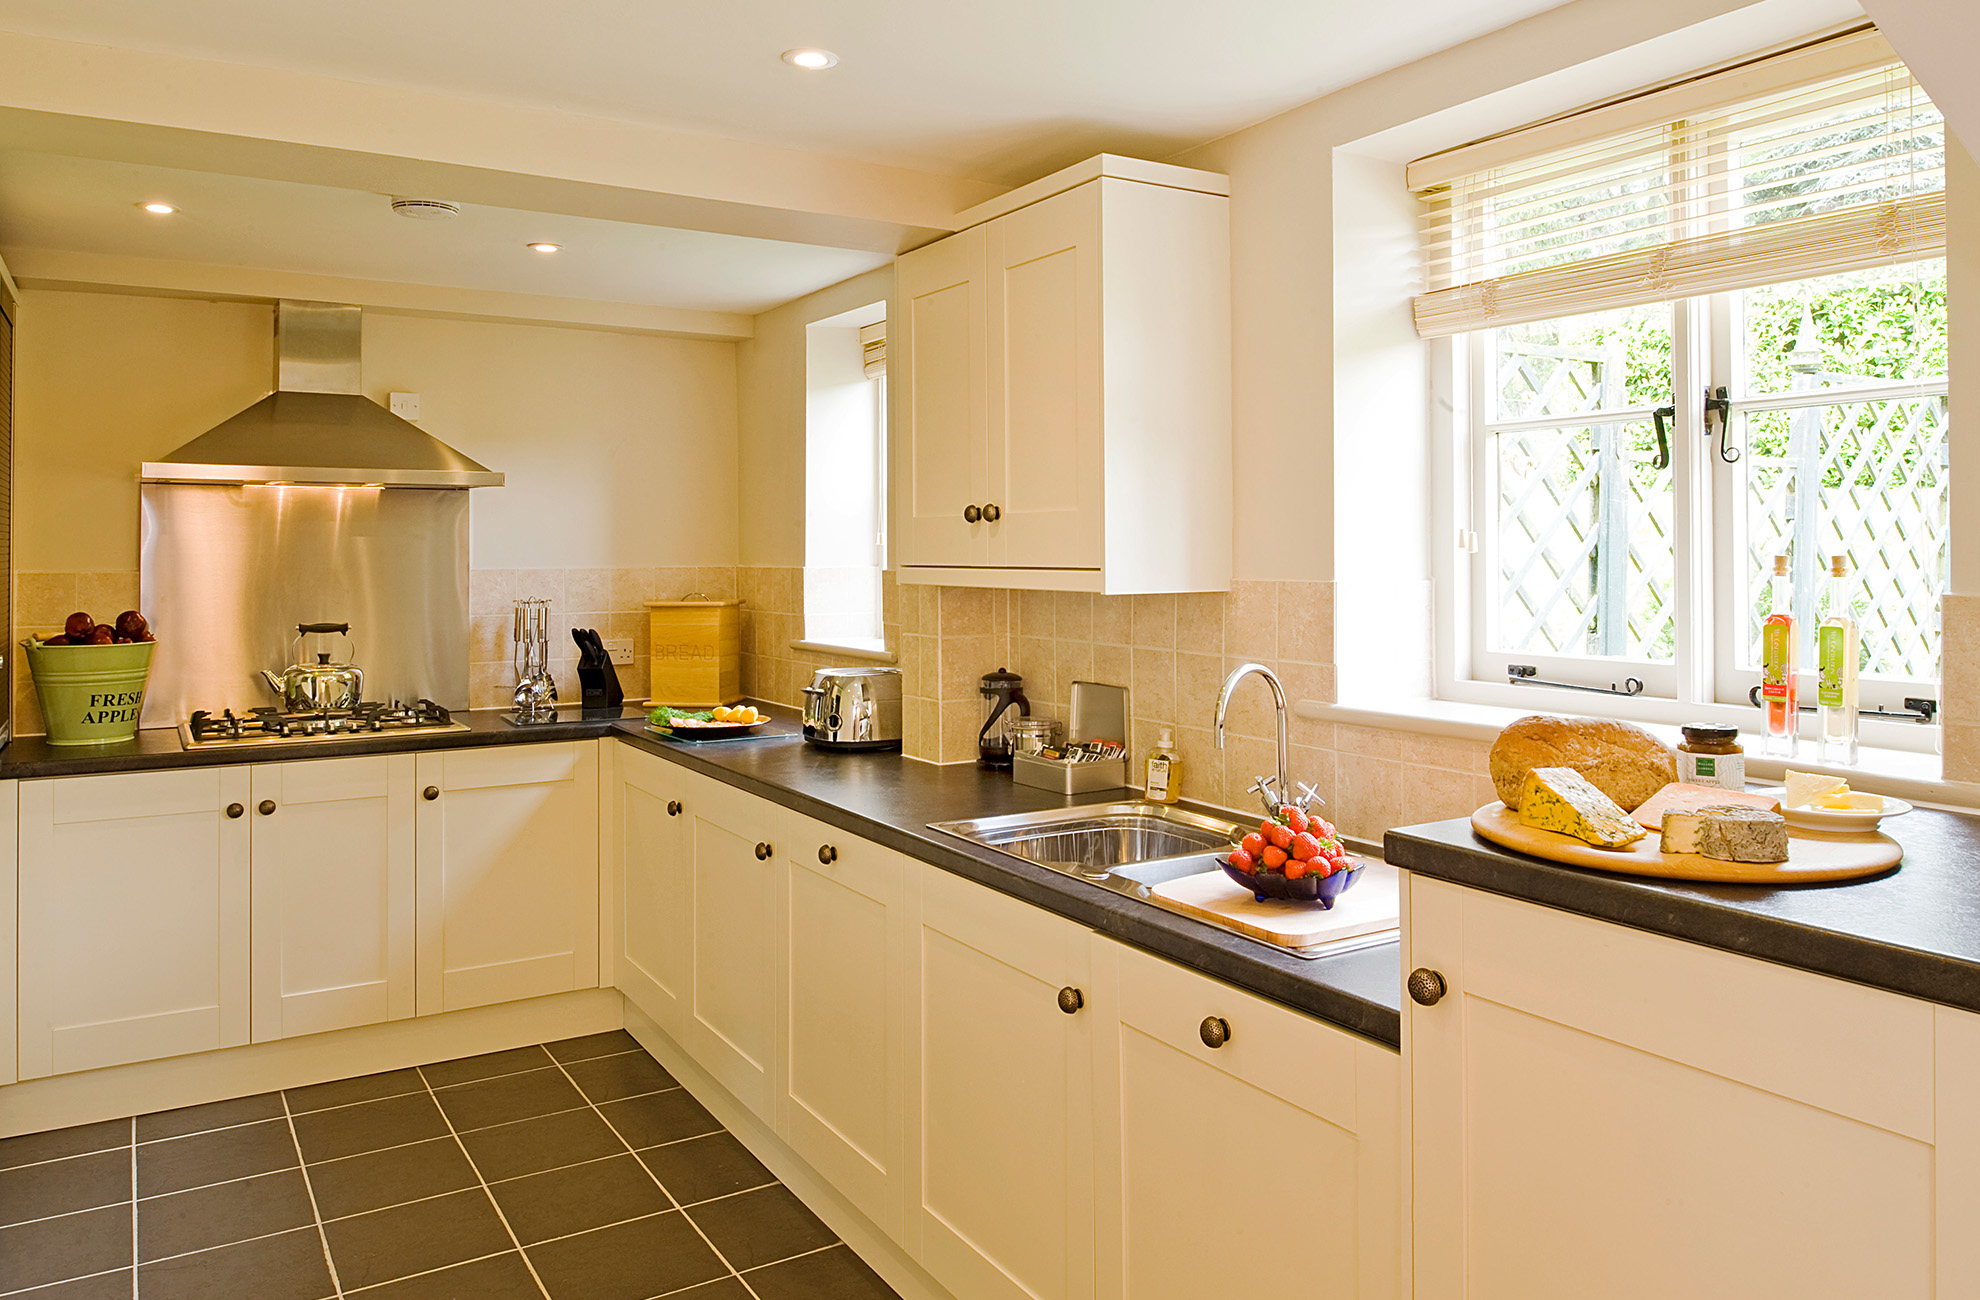 The Malbanc Cottage Is a self catering cottage at Combermere Abbey and comes with Its own kitchen